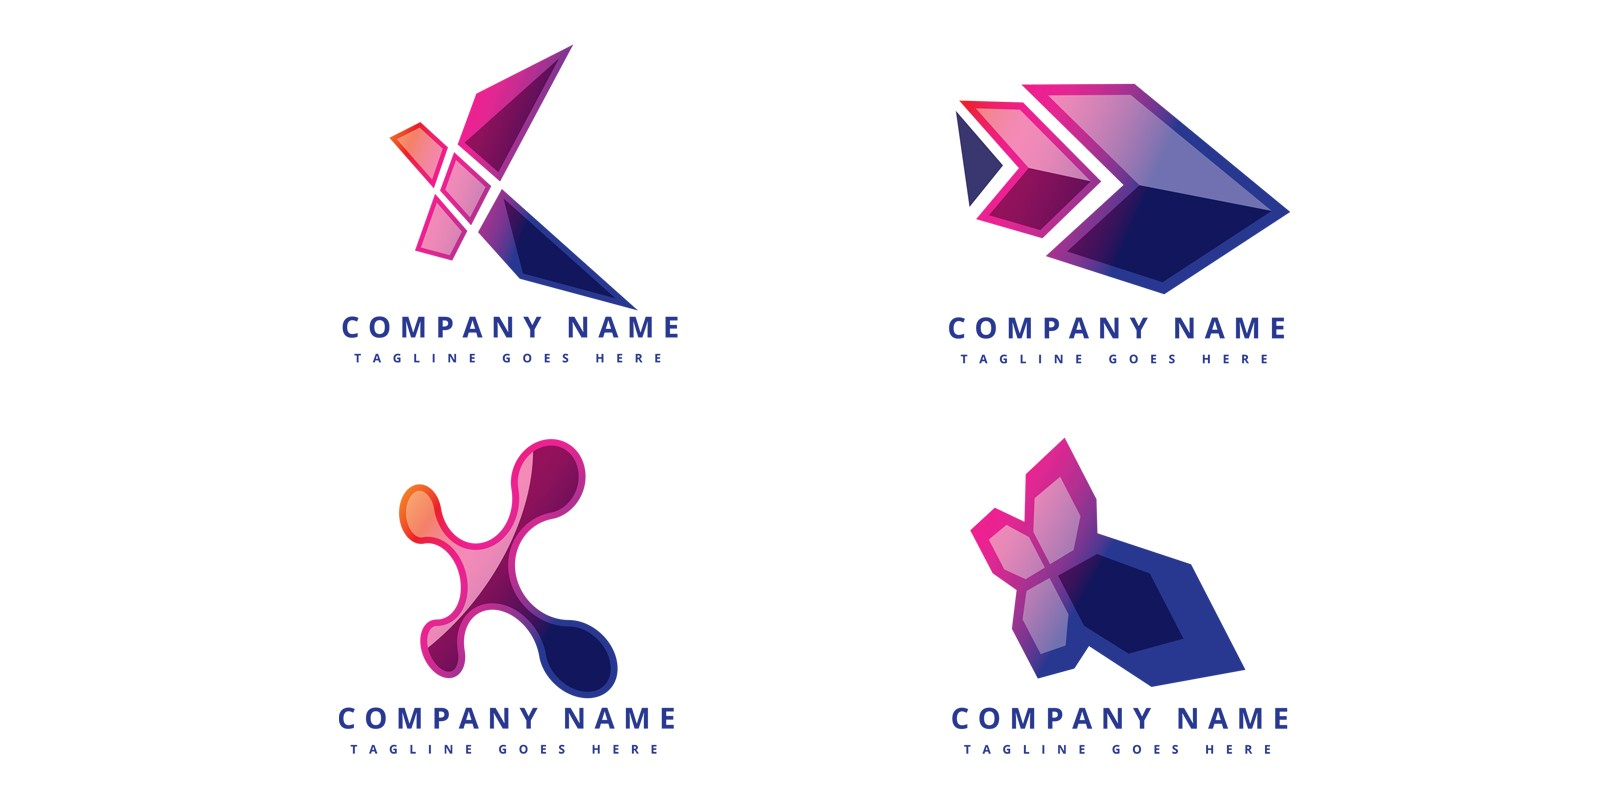 Futuristic, modern and creative digital media logo